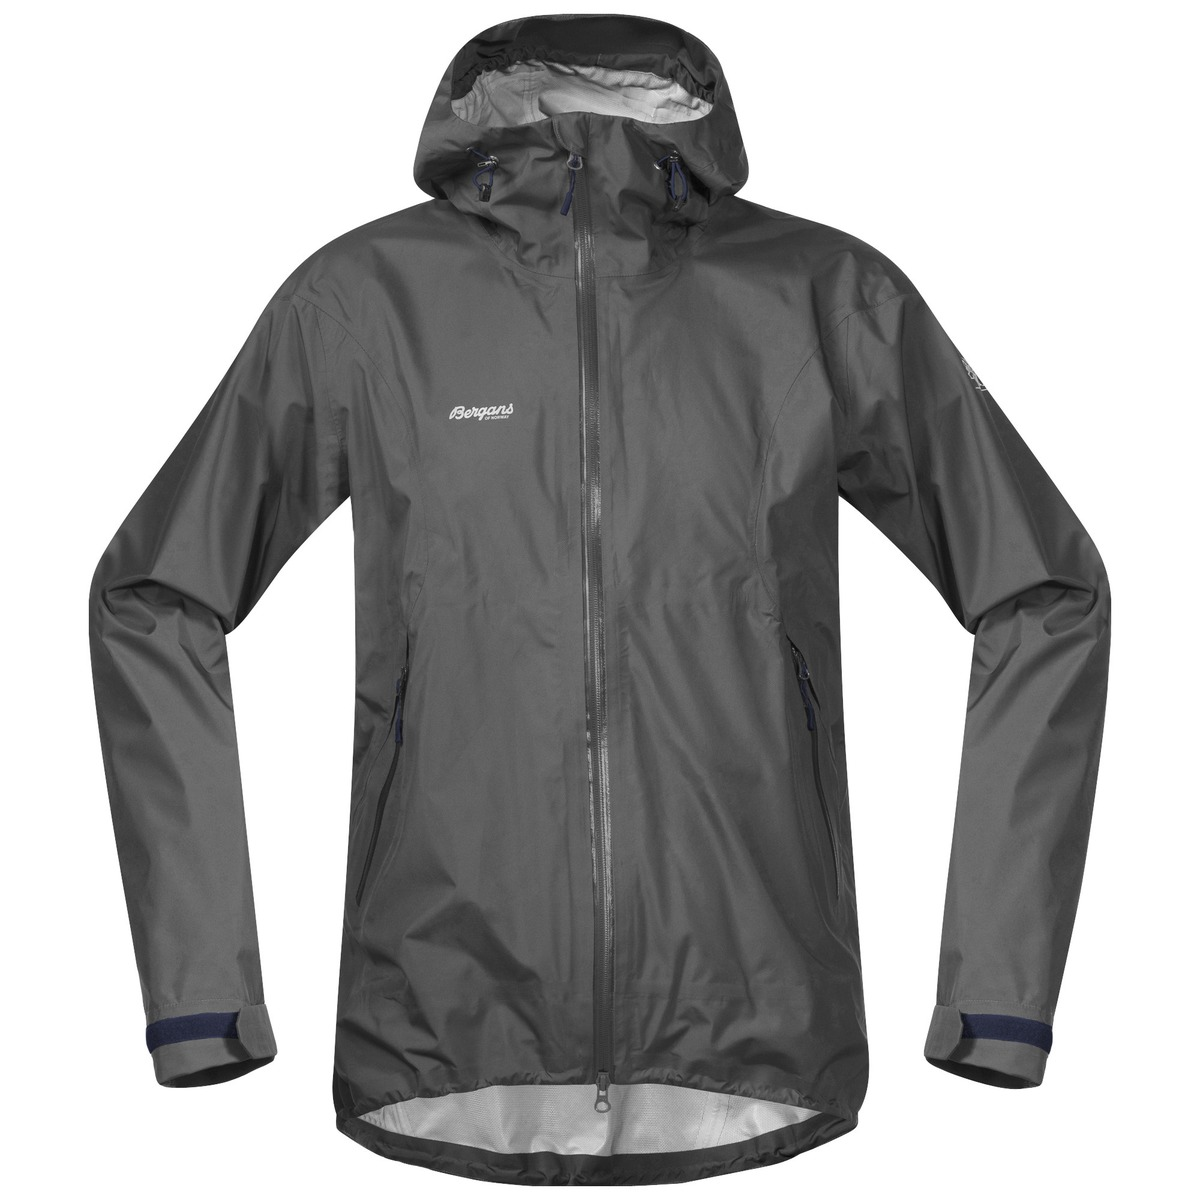 f119eceb Find every shop in the world selling bergans letto jacket at PricePi.com